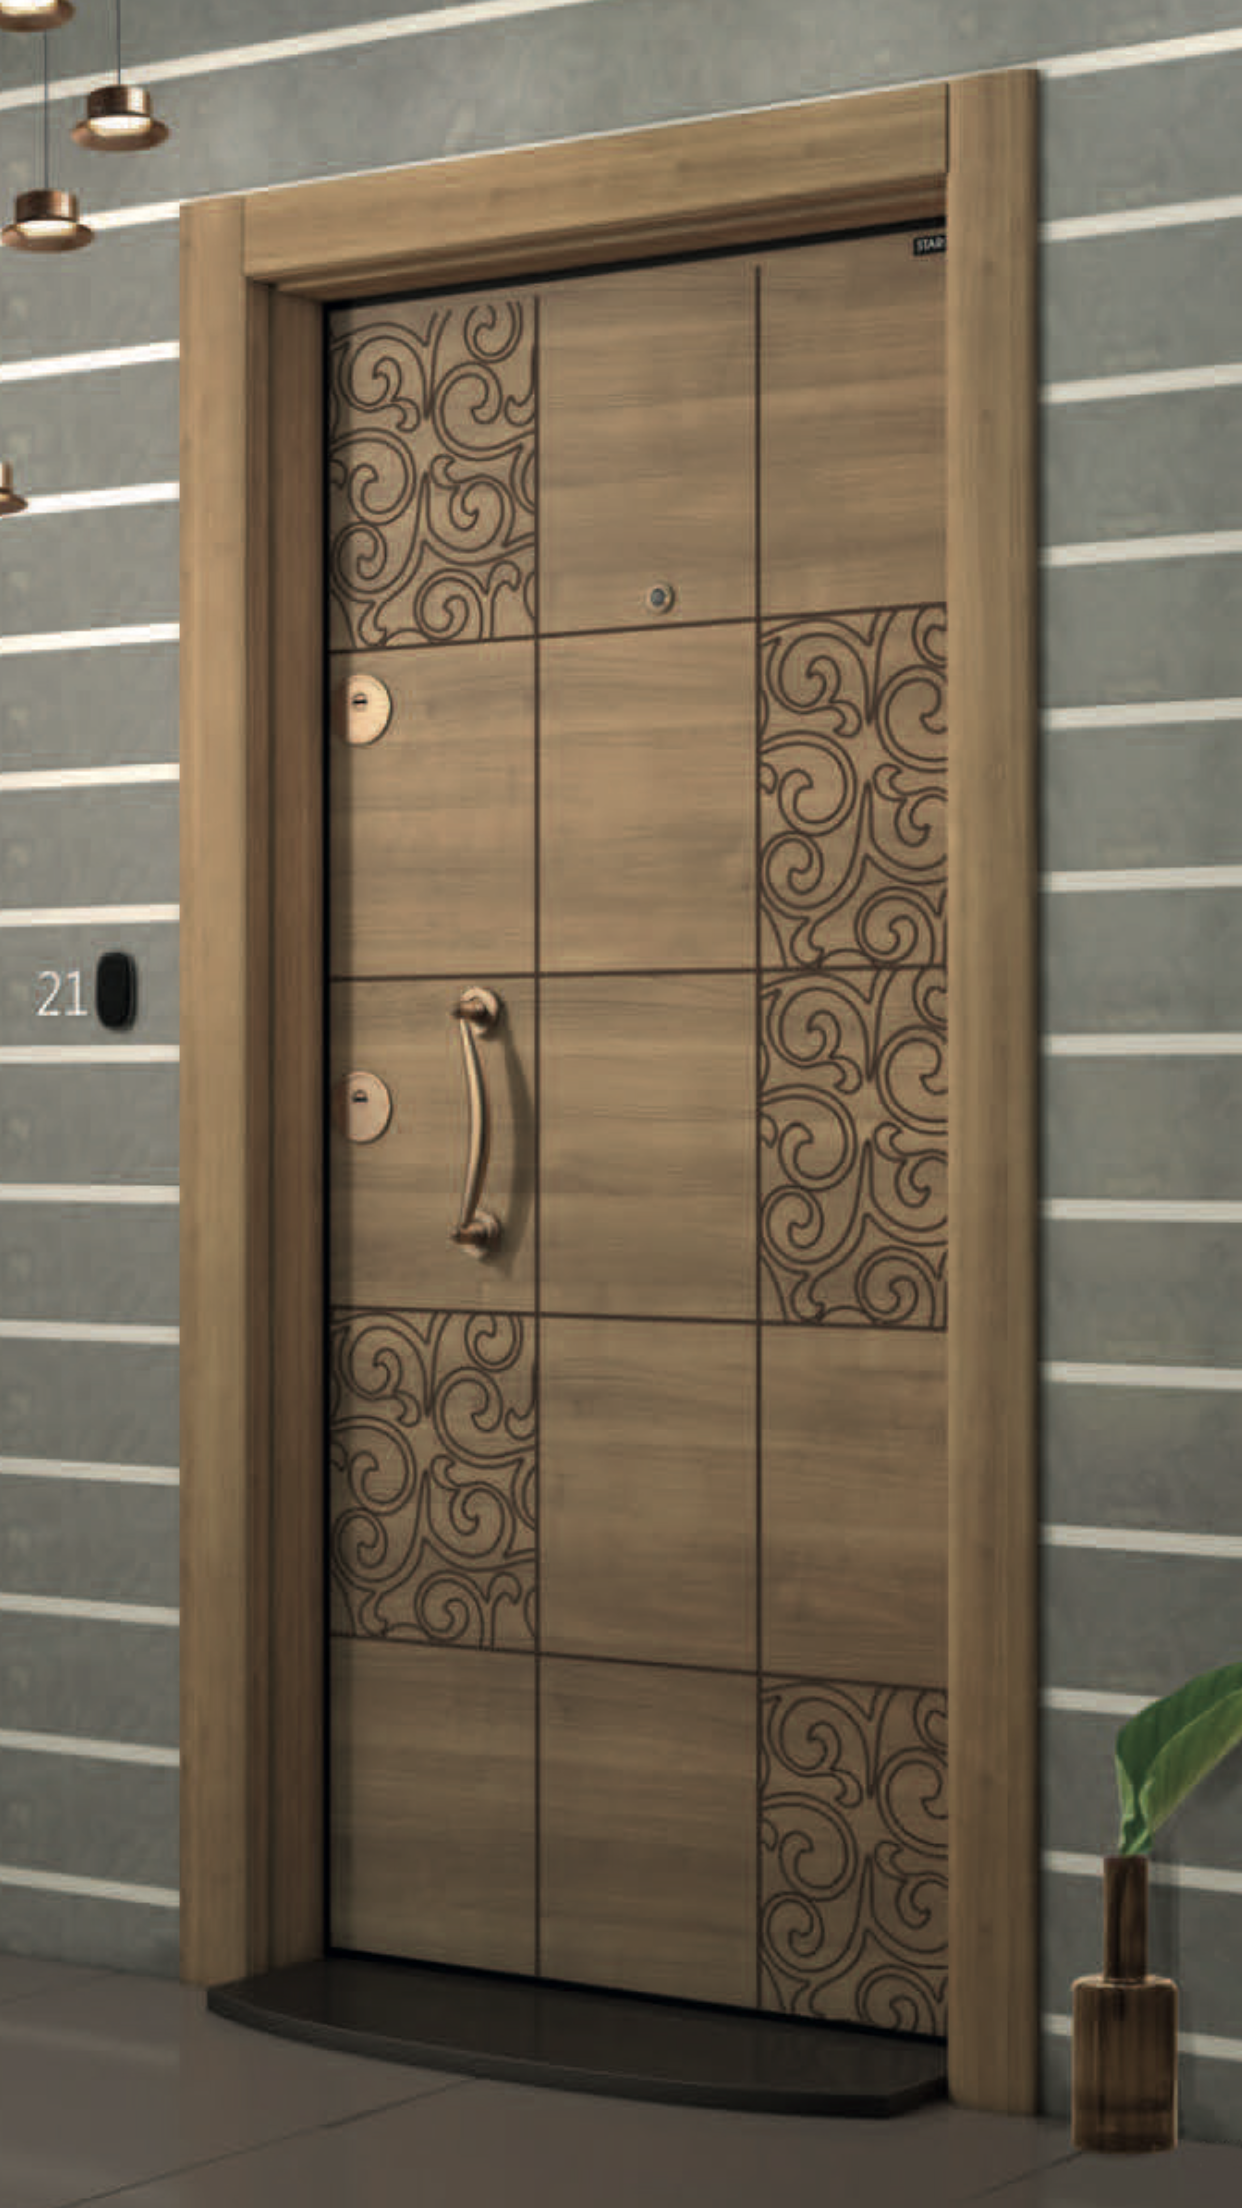 20 Best Modern Door Designs From Wood: Door Design Interior, Wooden Door Design